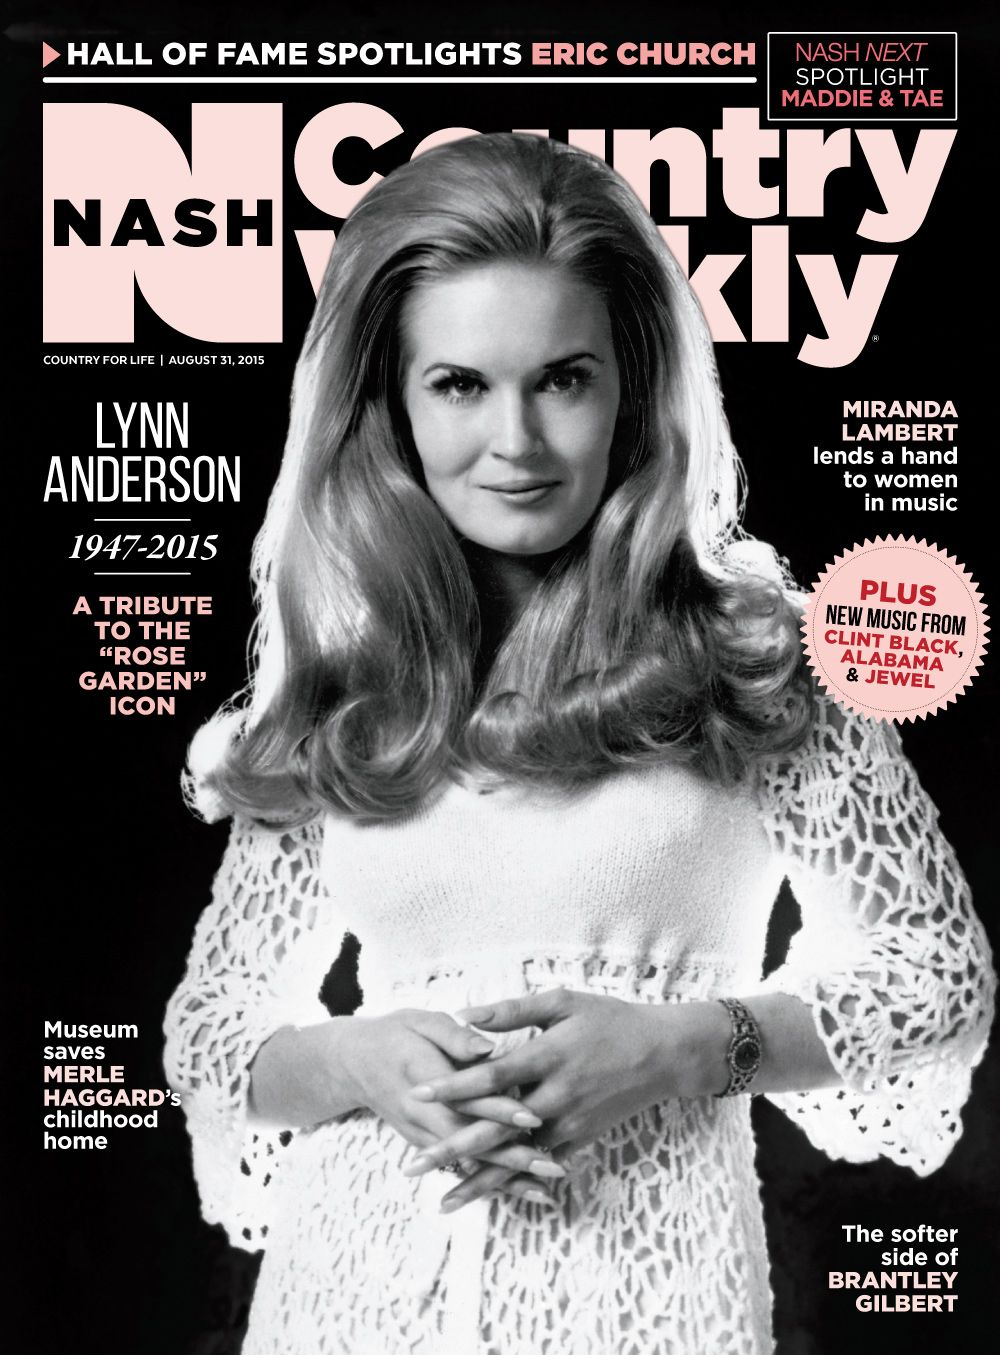 Pin on Nash Country Weekly Covers